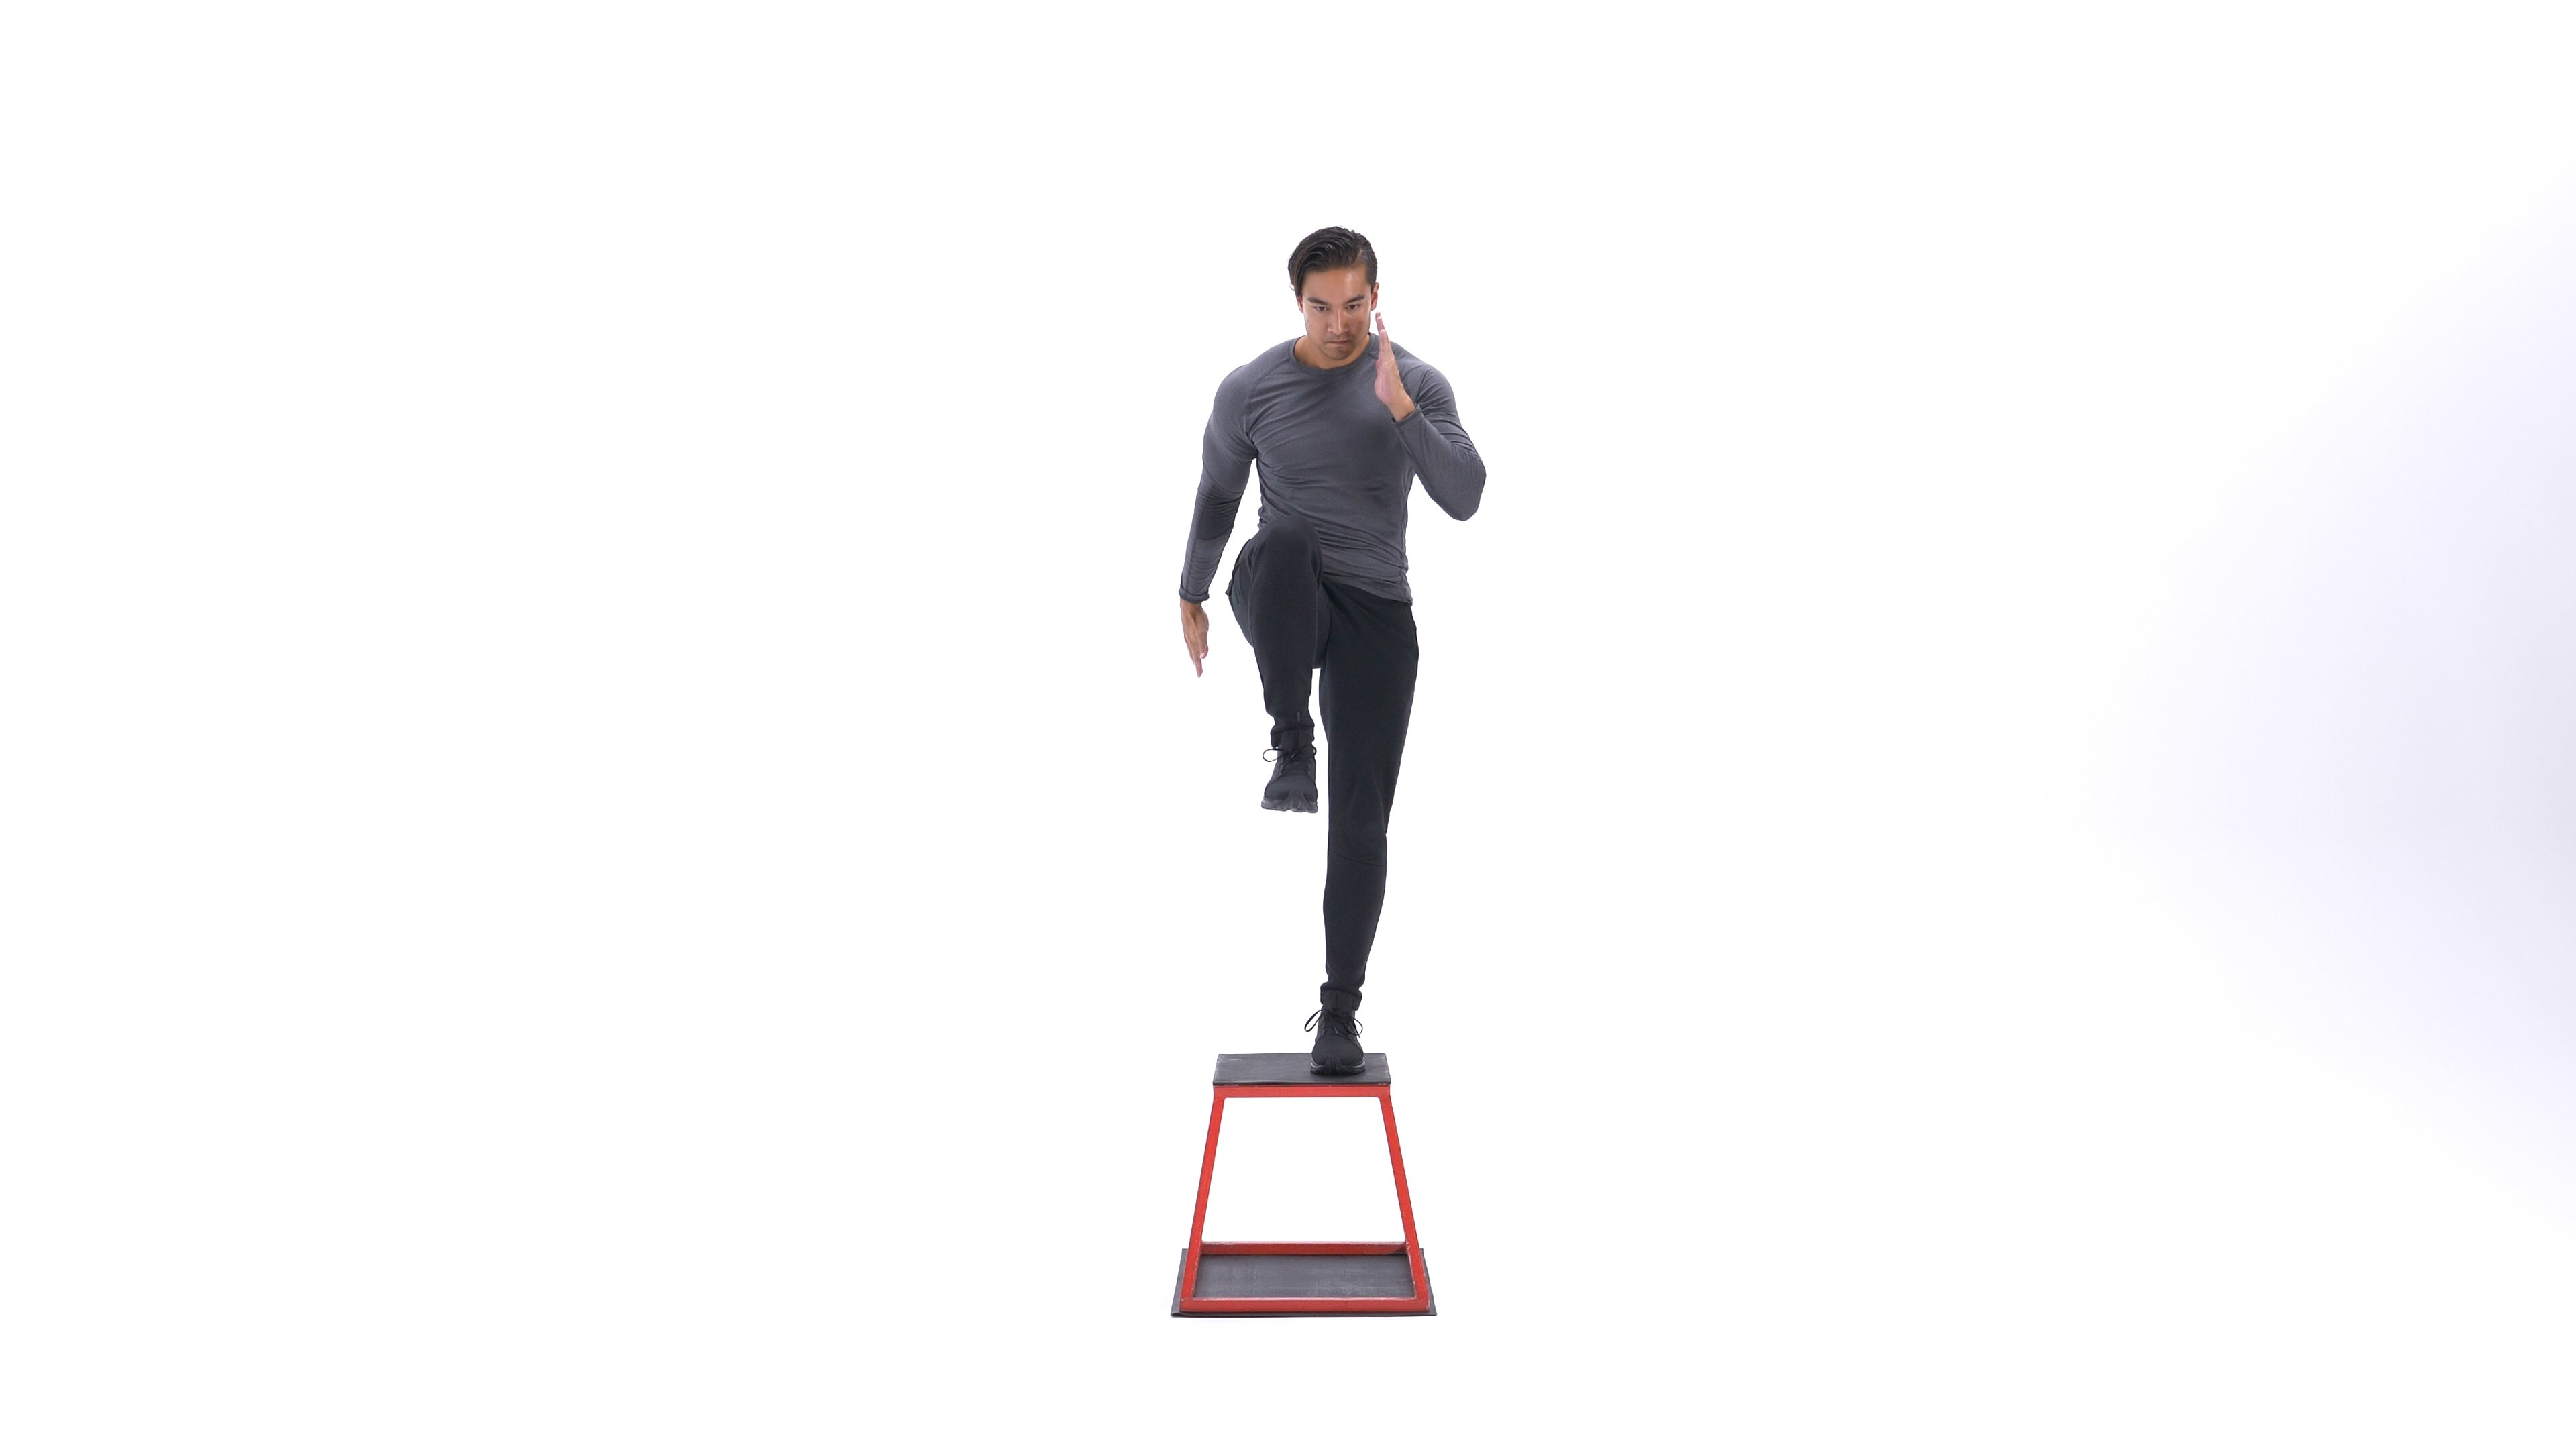 Step-up with knee raise image